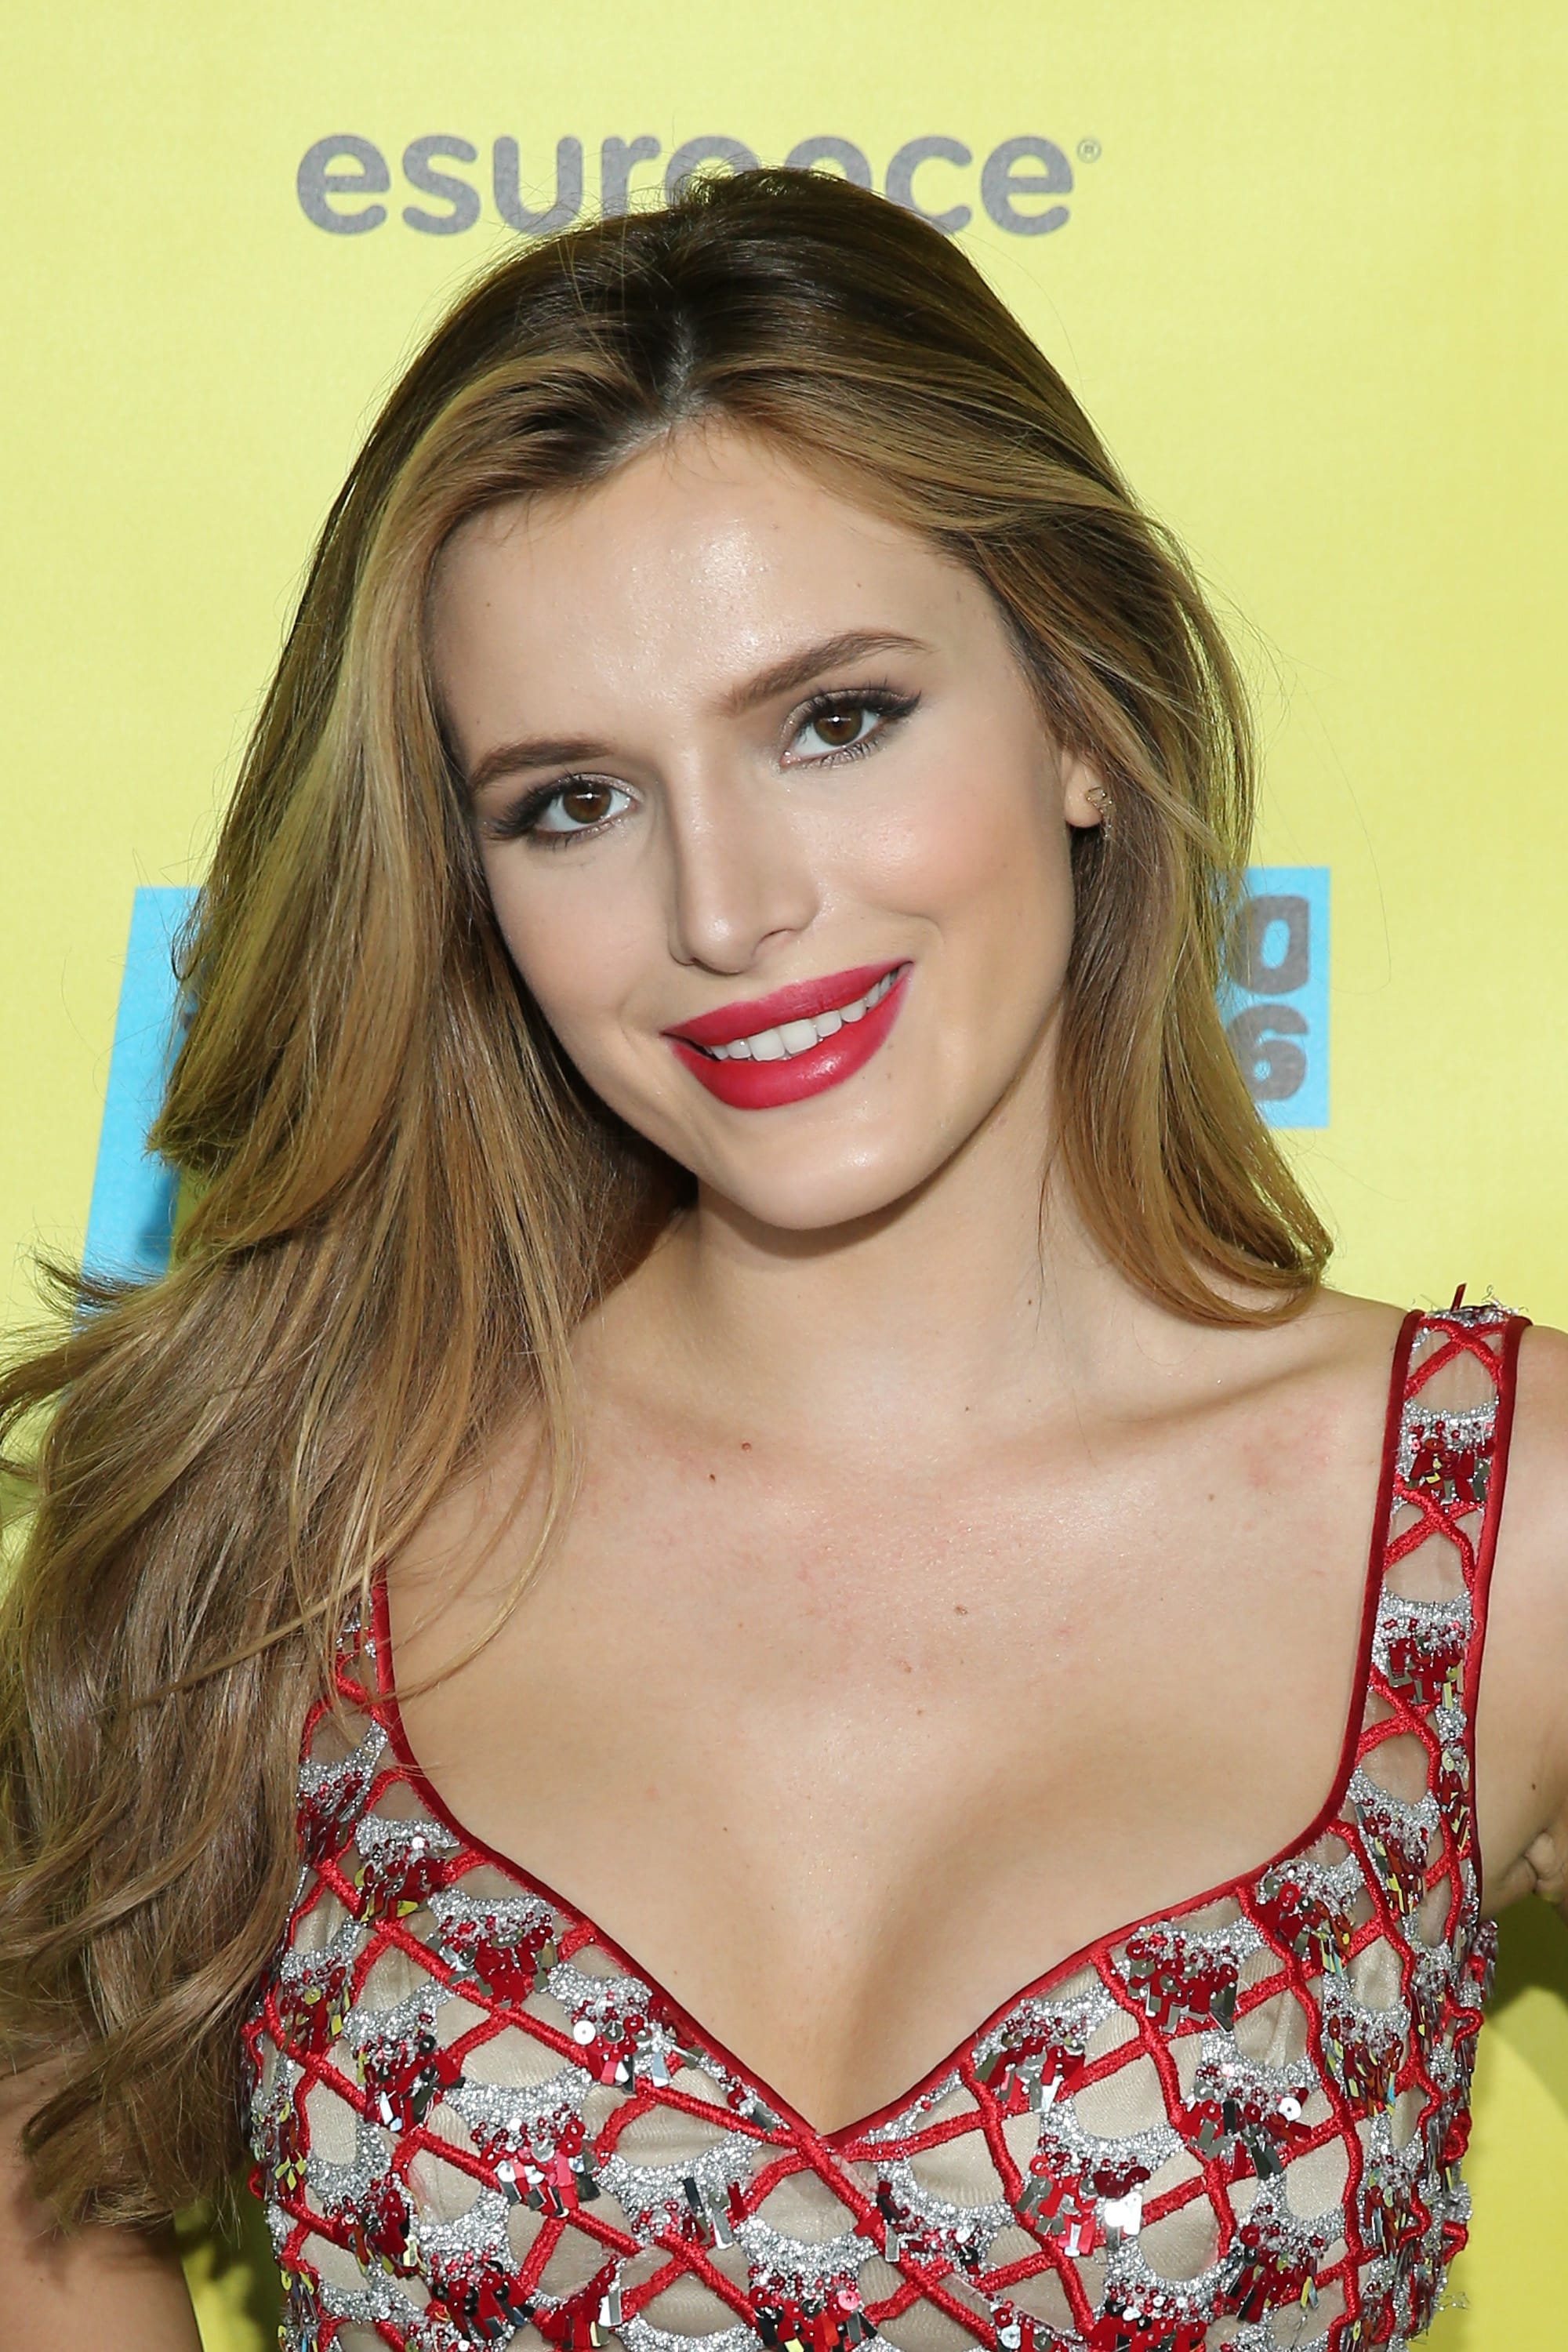 IMGCHILLI ASSES Bella Thorne: Smoking Blunts on Her Private Snapchat? - The Hollywood Gossip